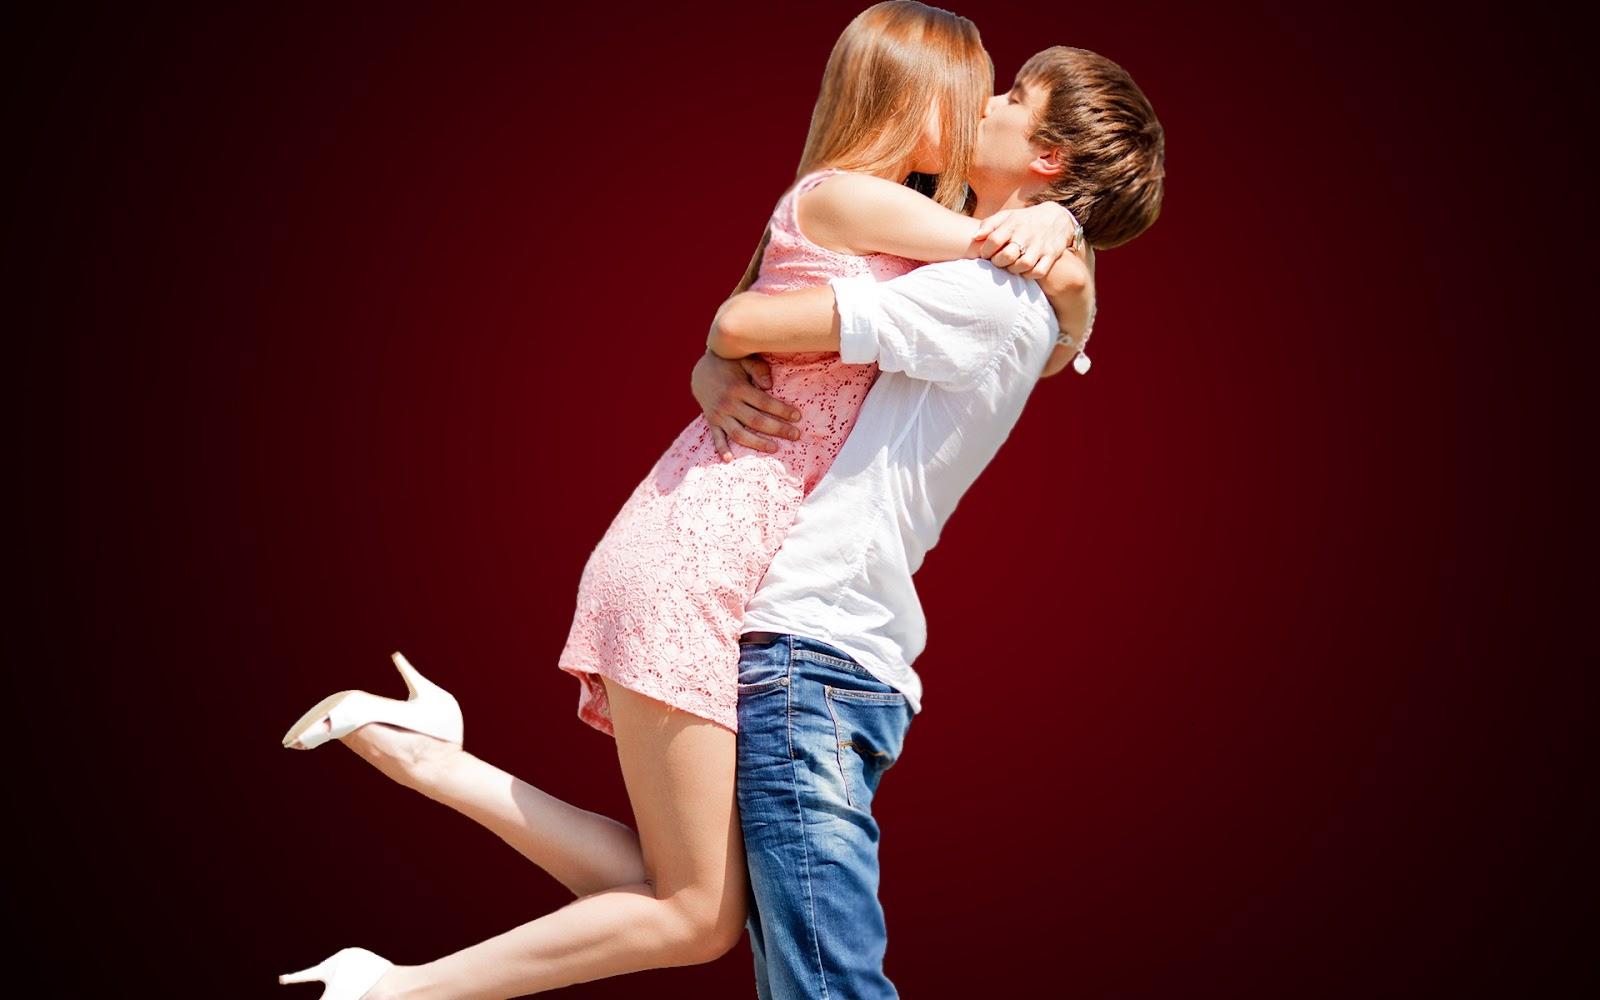 Hot Couple Kissing 1080P Hd Wallpapers  Images  Hd -9307